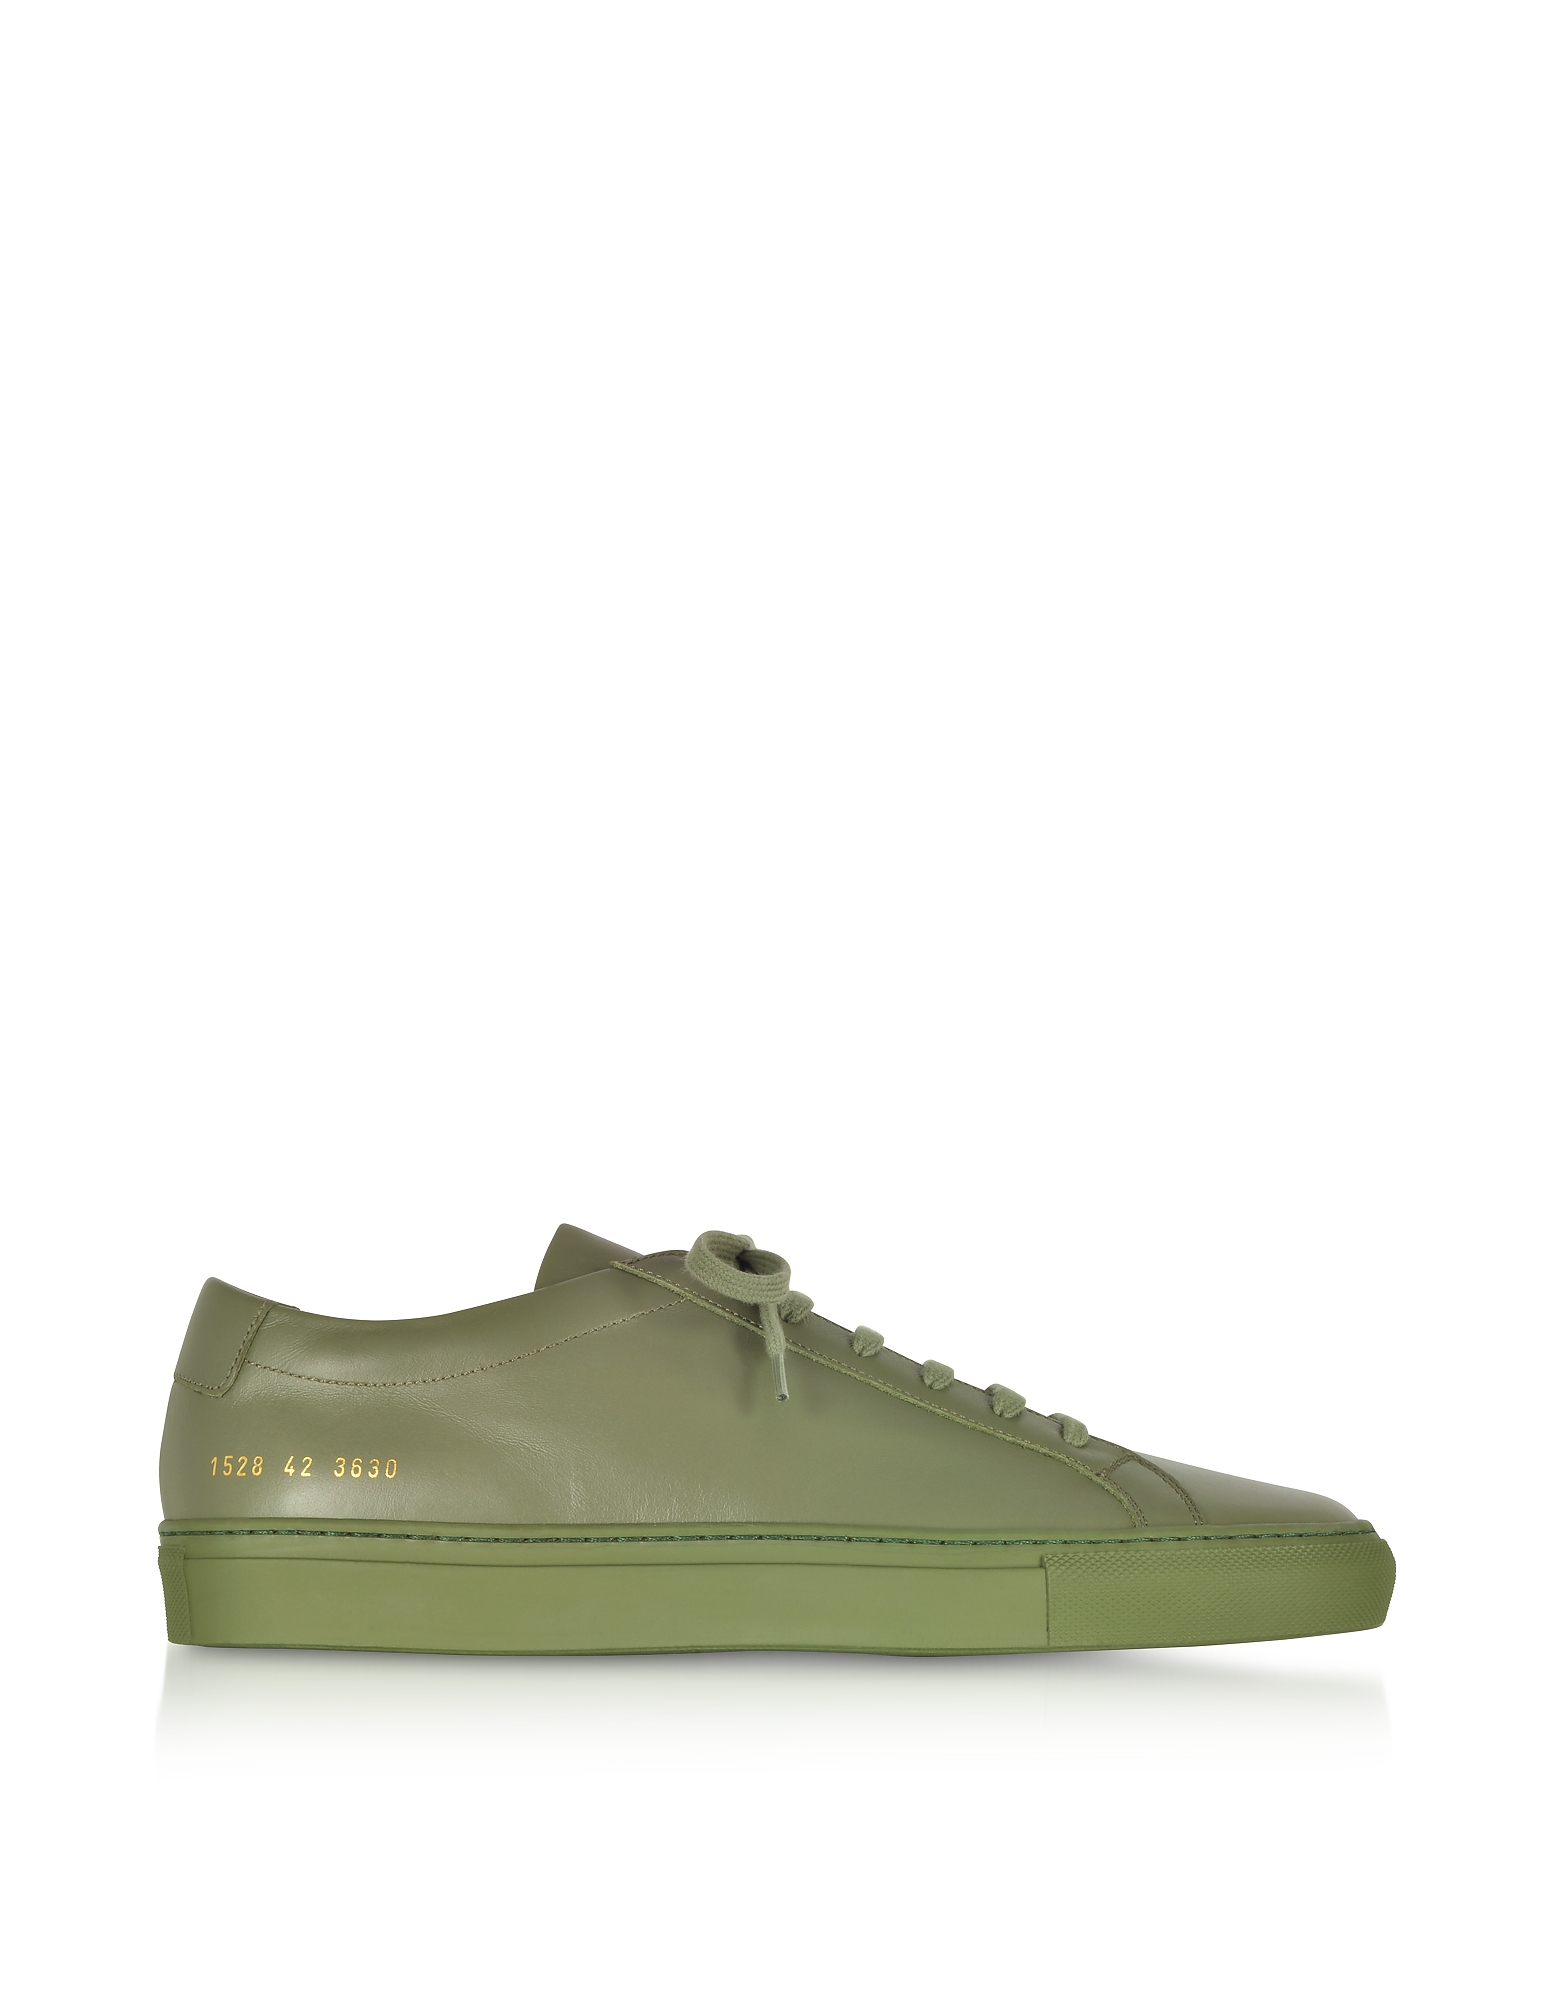 Common Projects Shoes, Army Green Leather Original Achilles Low Men's Snaeakers